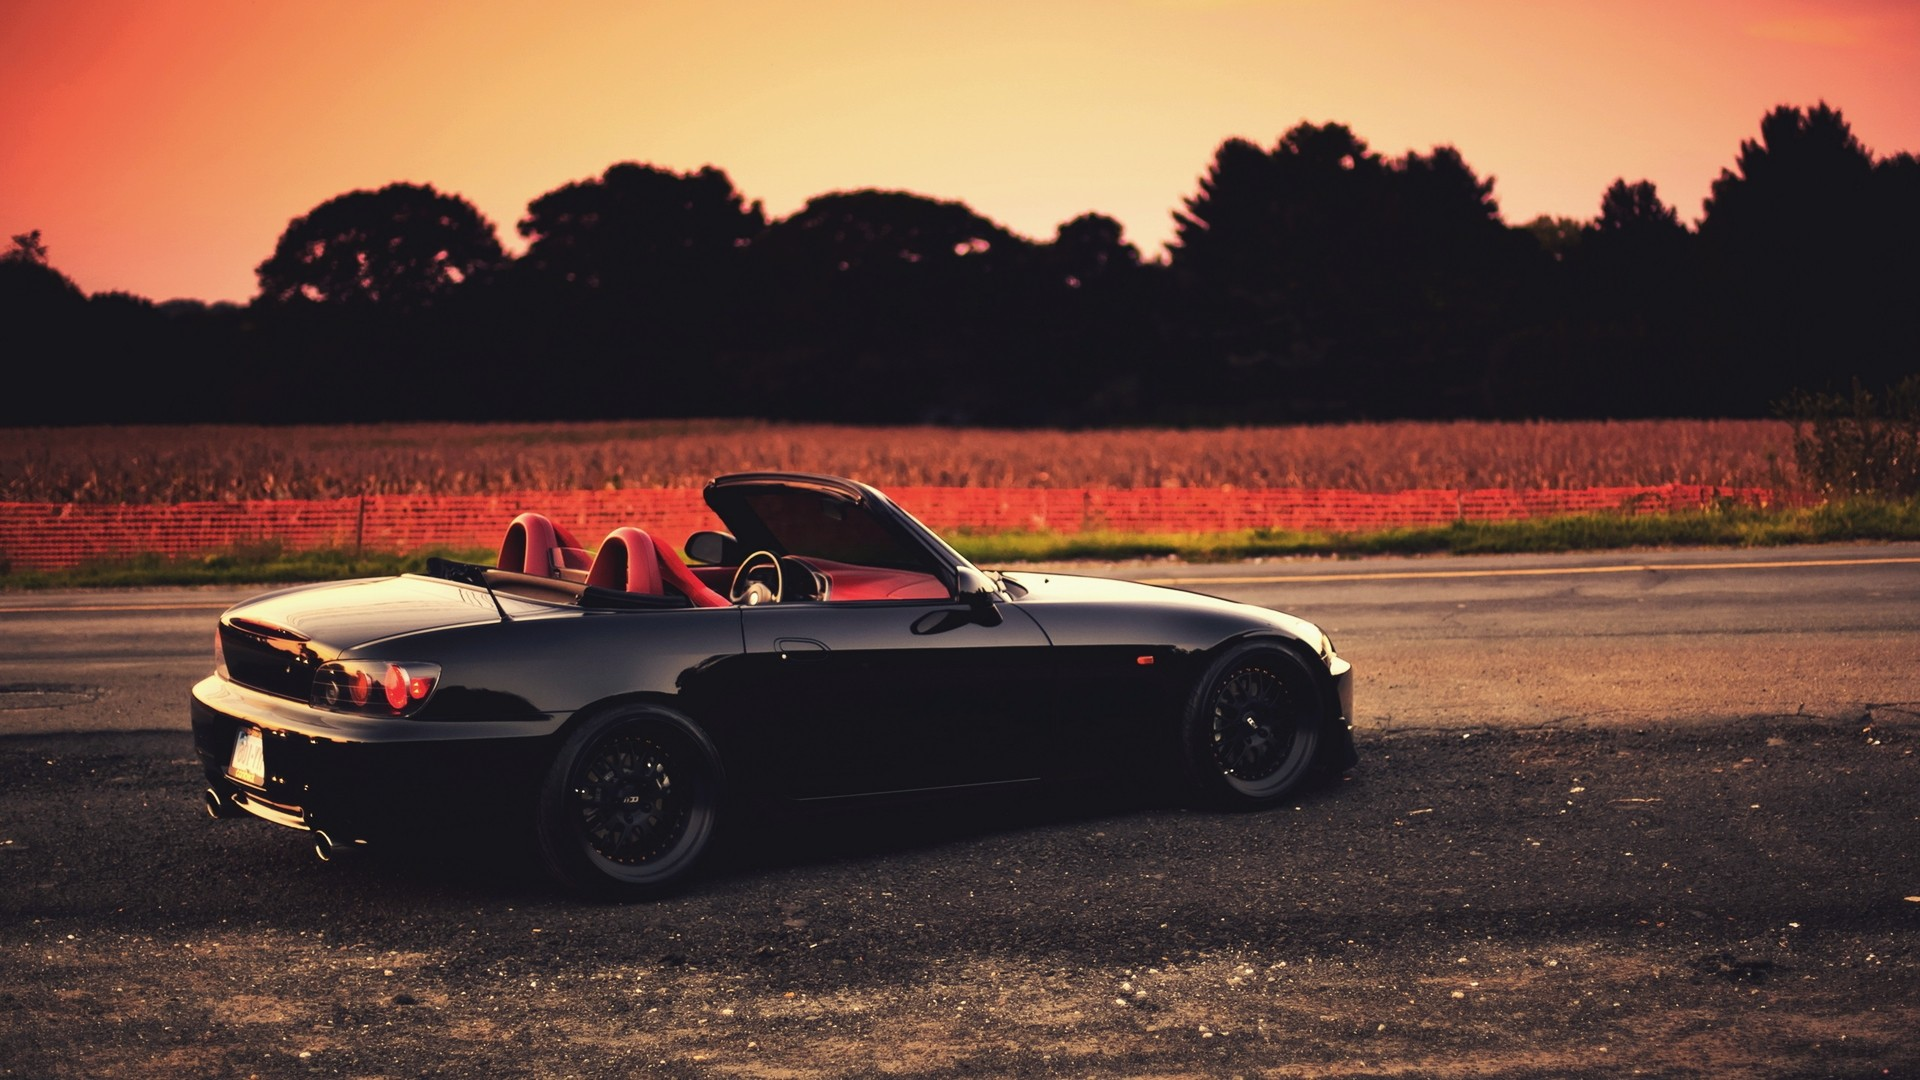 1920x1080 - Honda S2000 Wallpapers 5